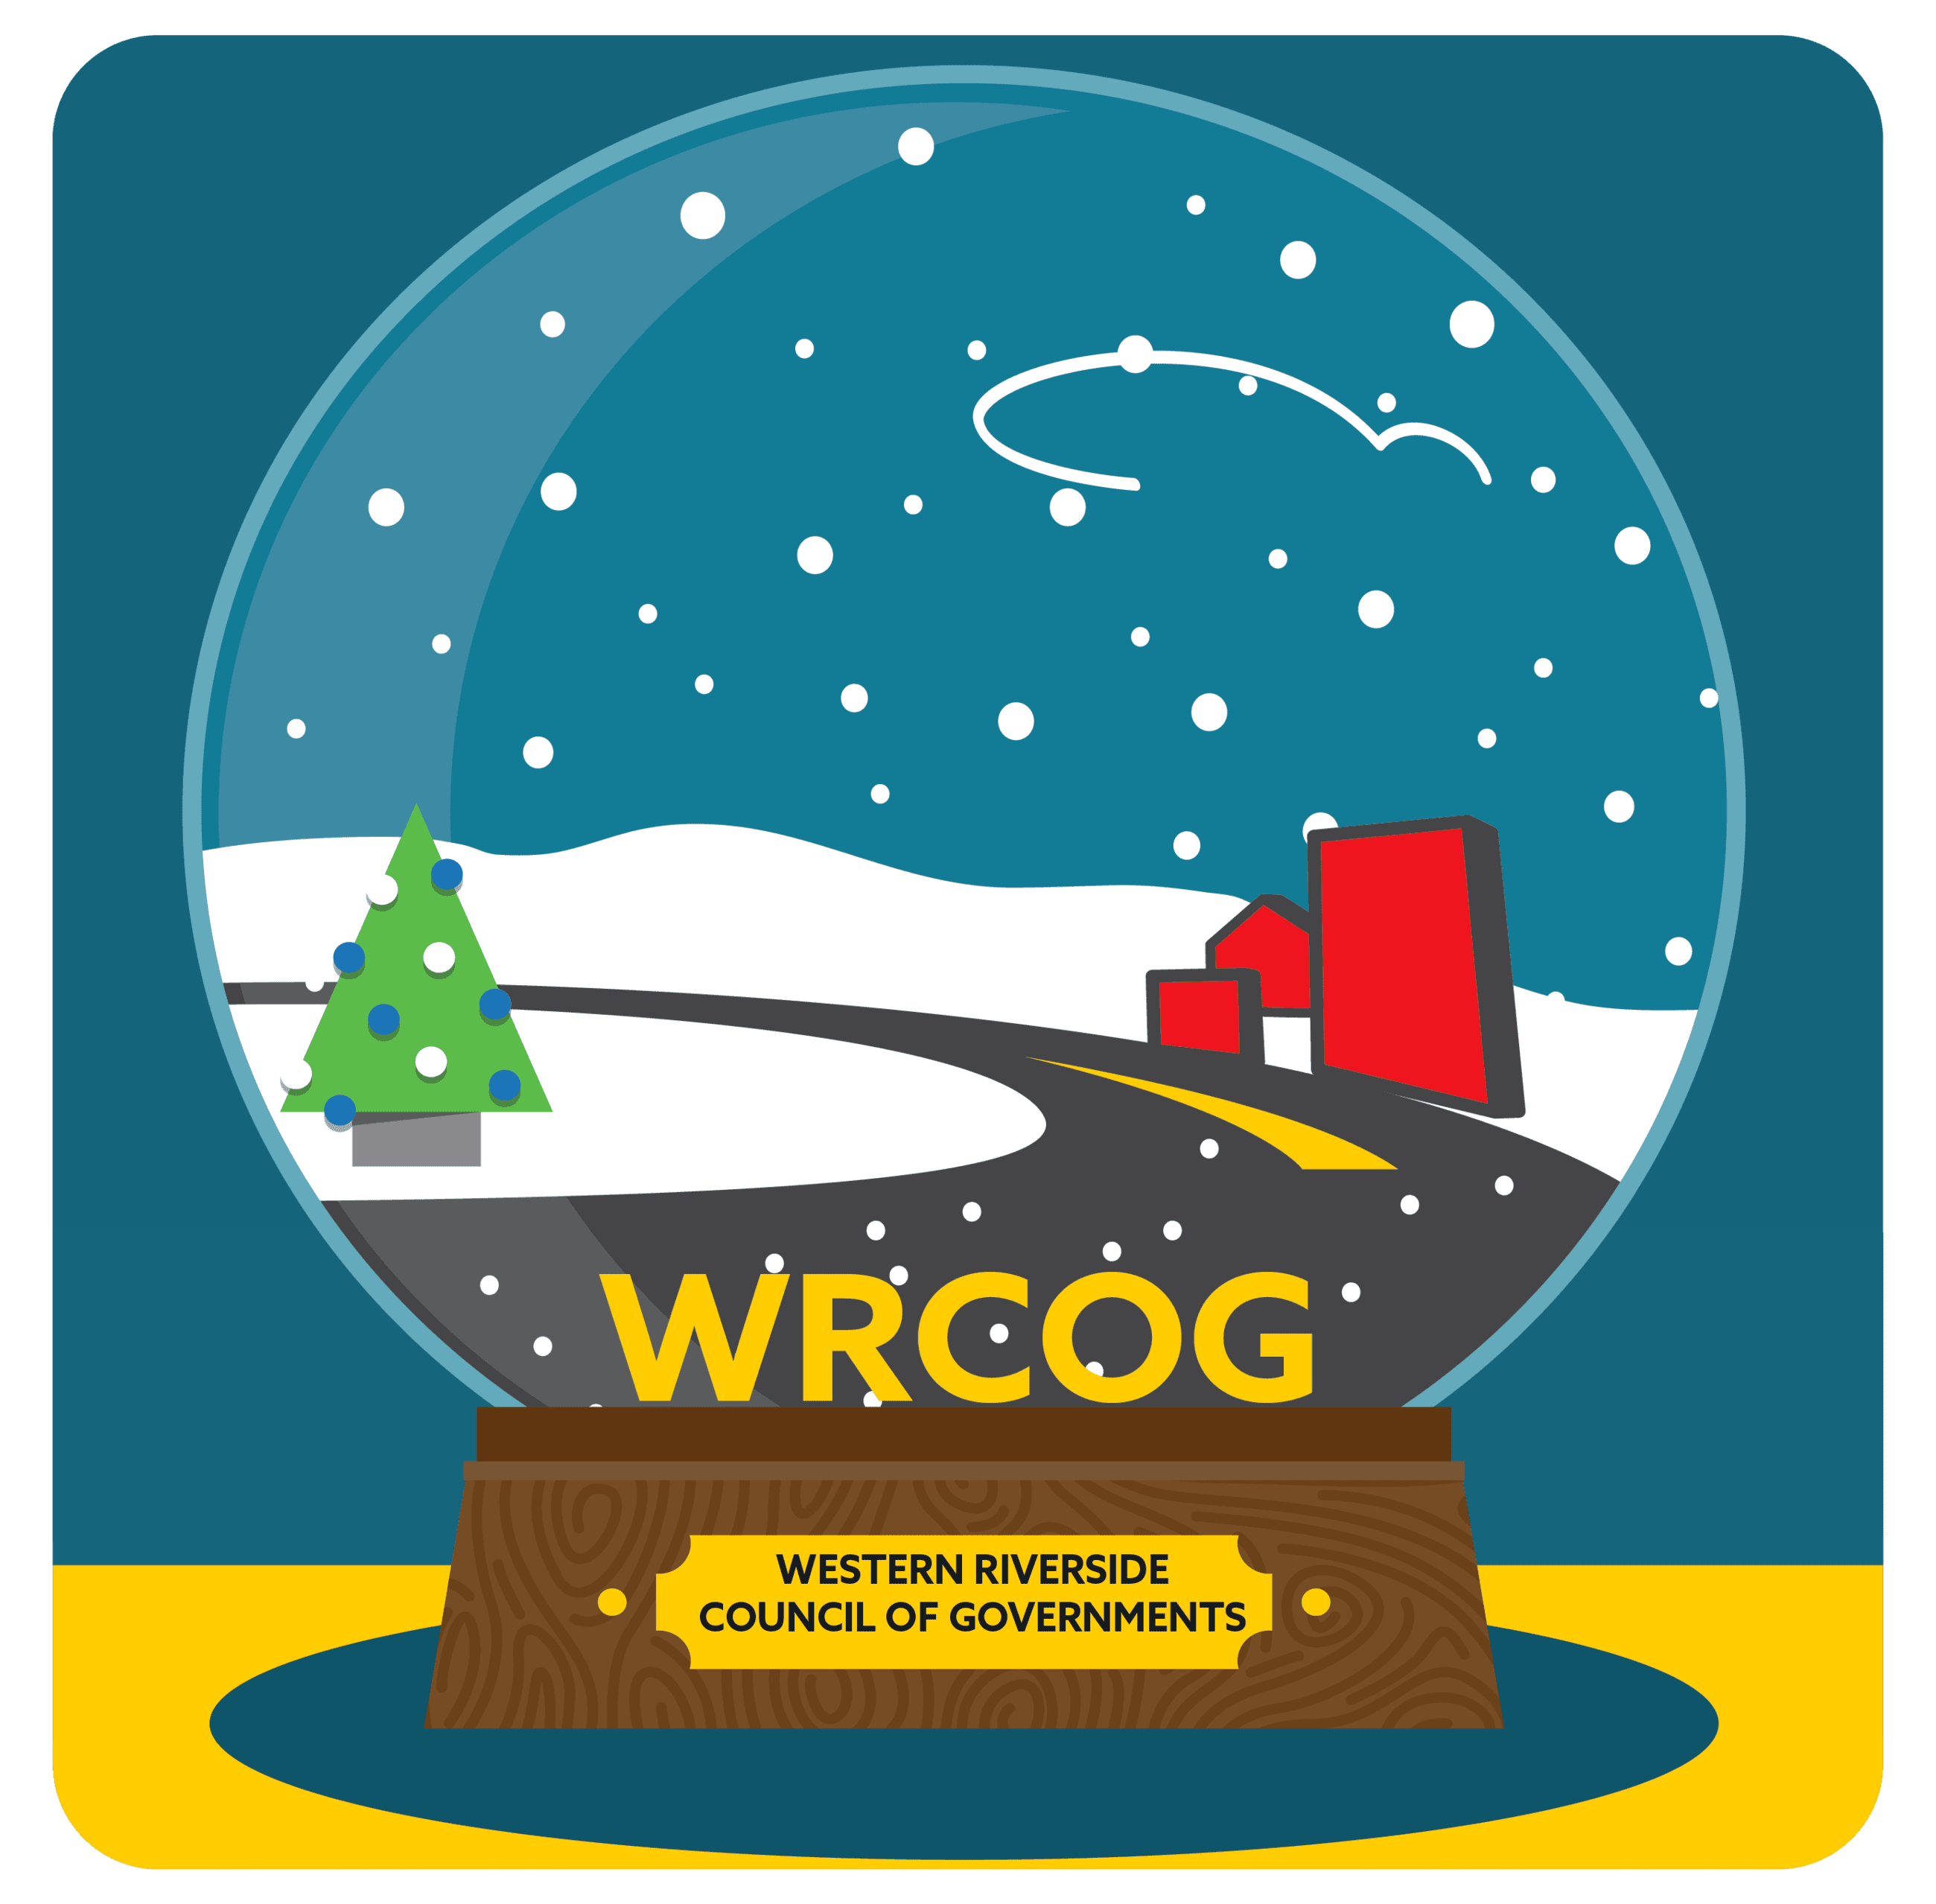 WRCOG holiday logo 2017 - Transparent